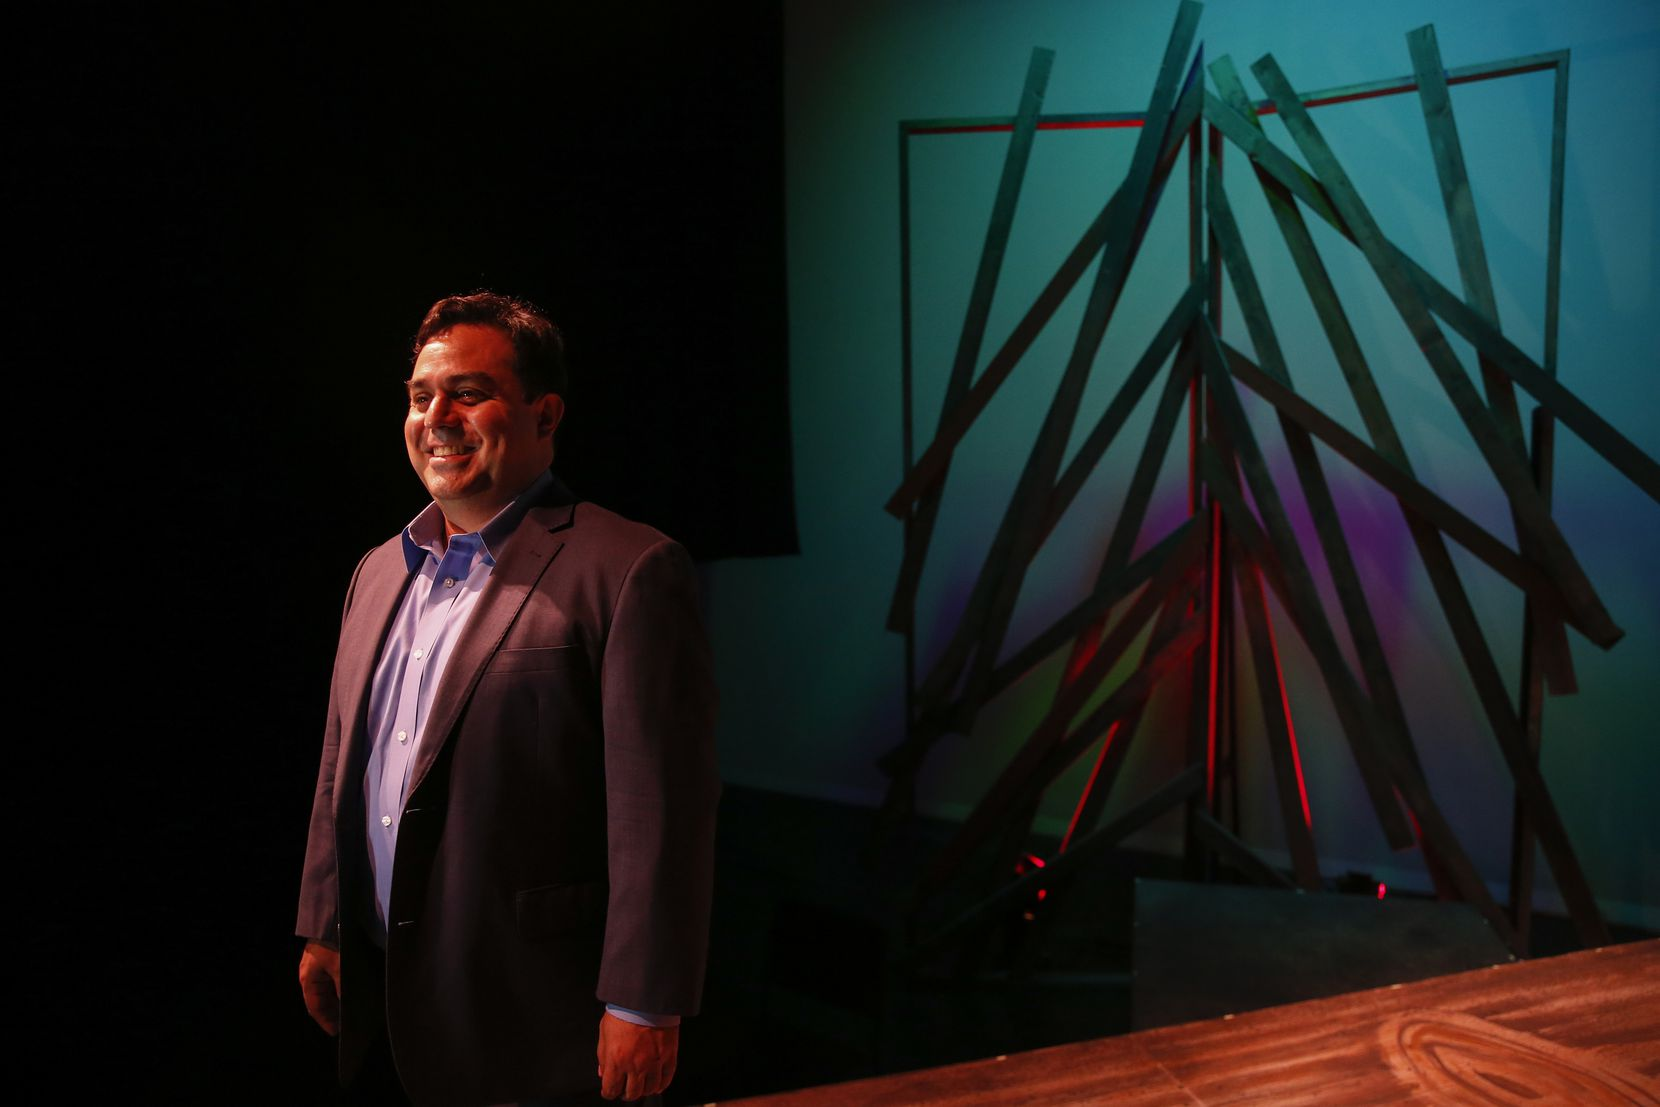 David Lozano, the executive artistic director of Cara Mía Theatre, says the small company was growing its outreach to communities and schools when the pandemic hit, stopping the momentum.